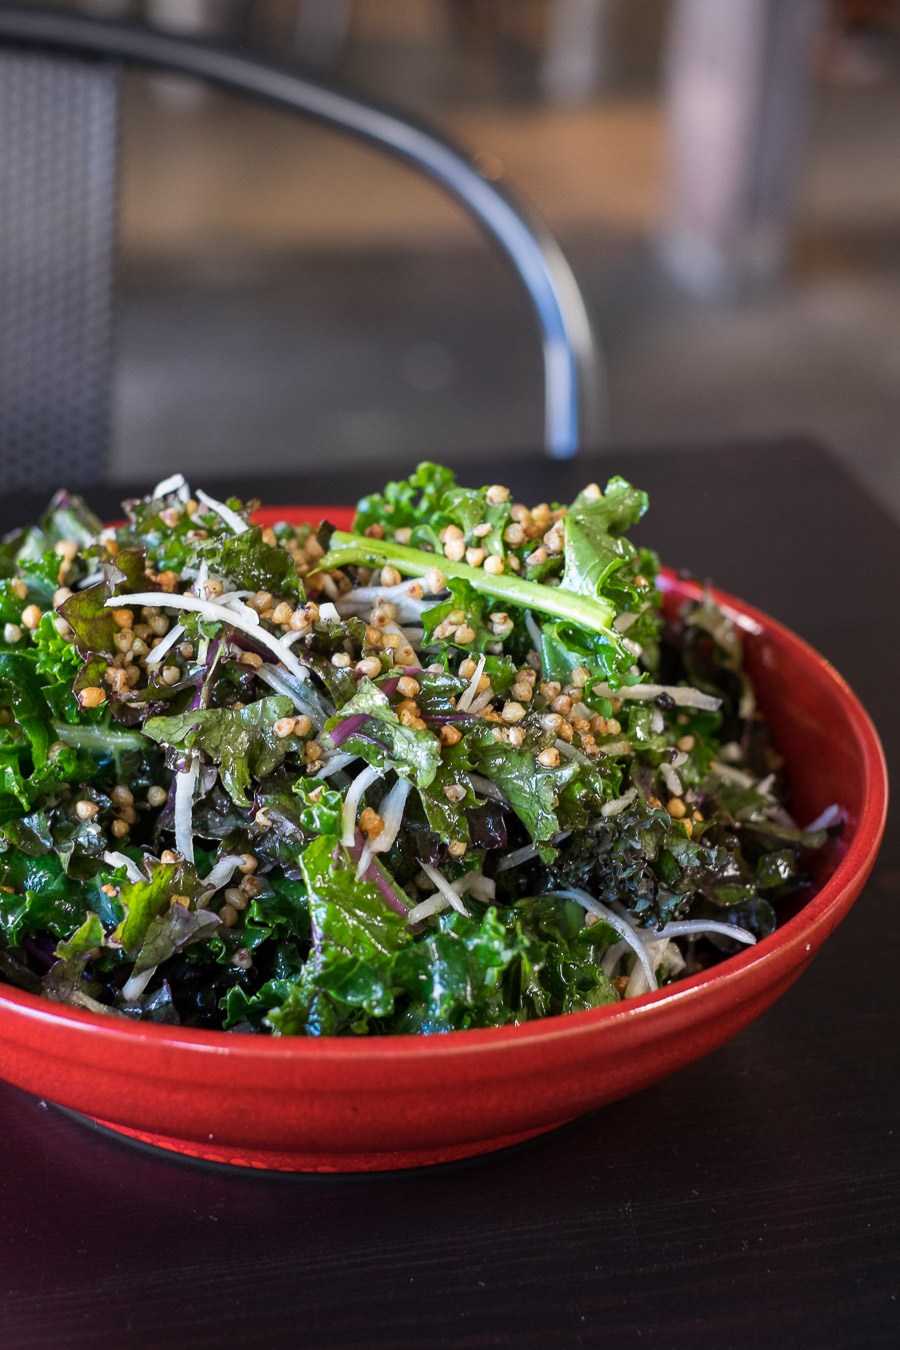 Baby kale salad, toasted buckwheat, Japanese turnip and vinaigrette (AU$12)